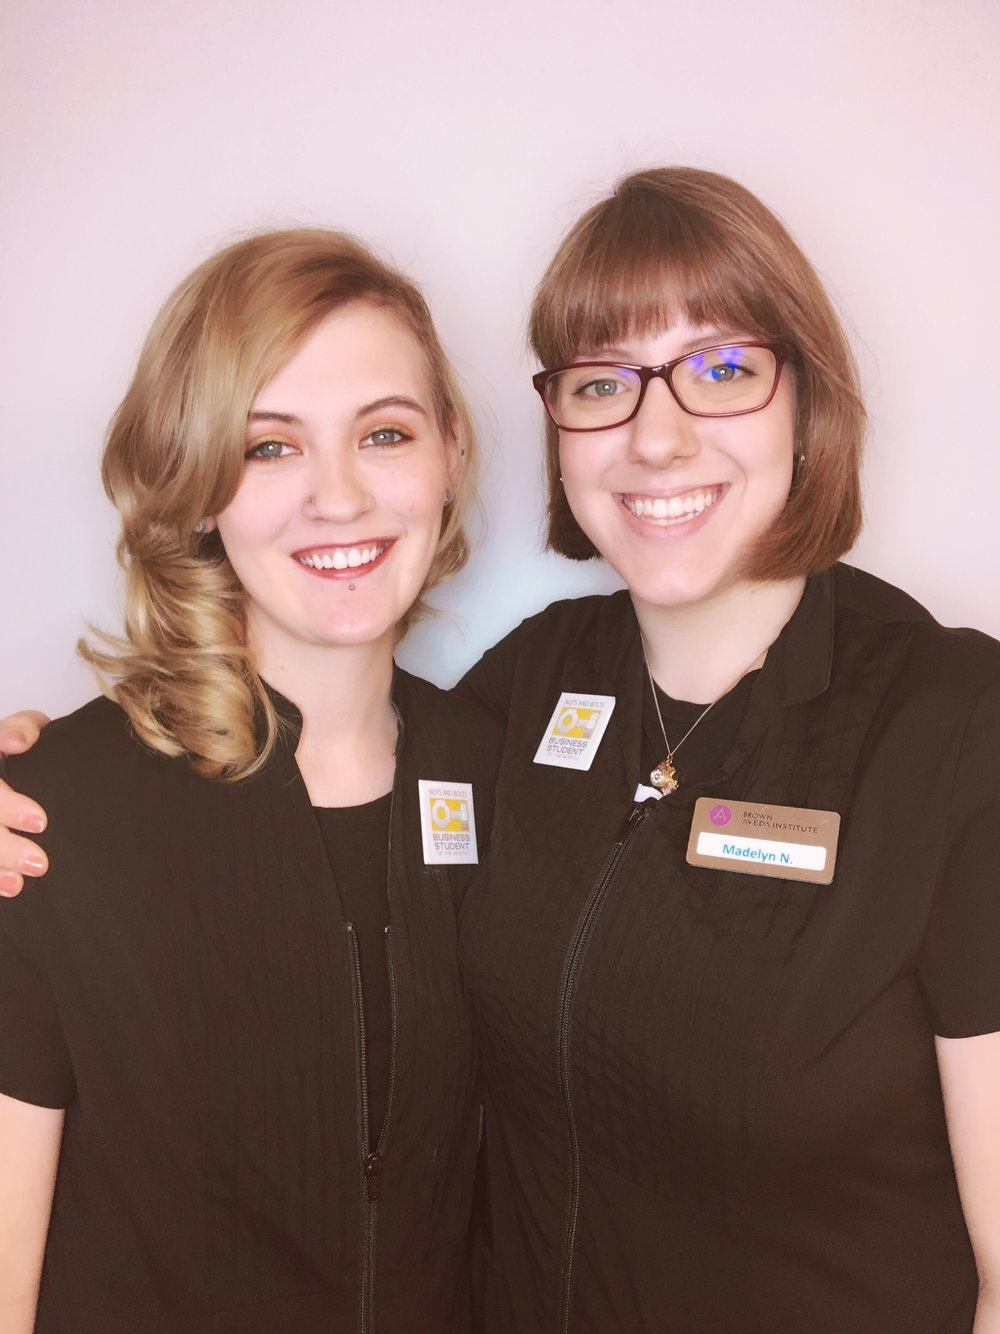 Cosmetology student Meranda Brothers and Esthetics student Madelyn Nichols